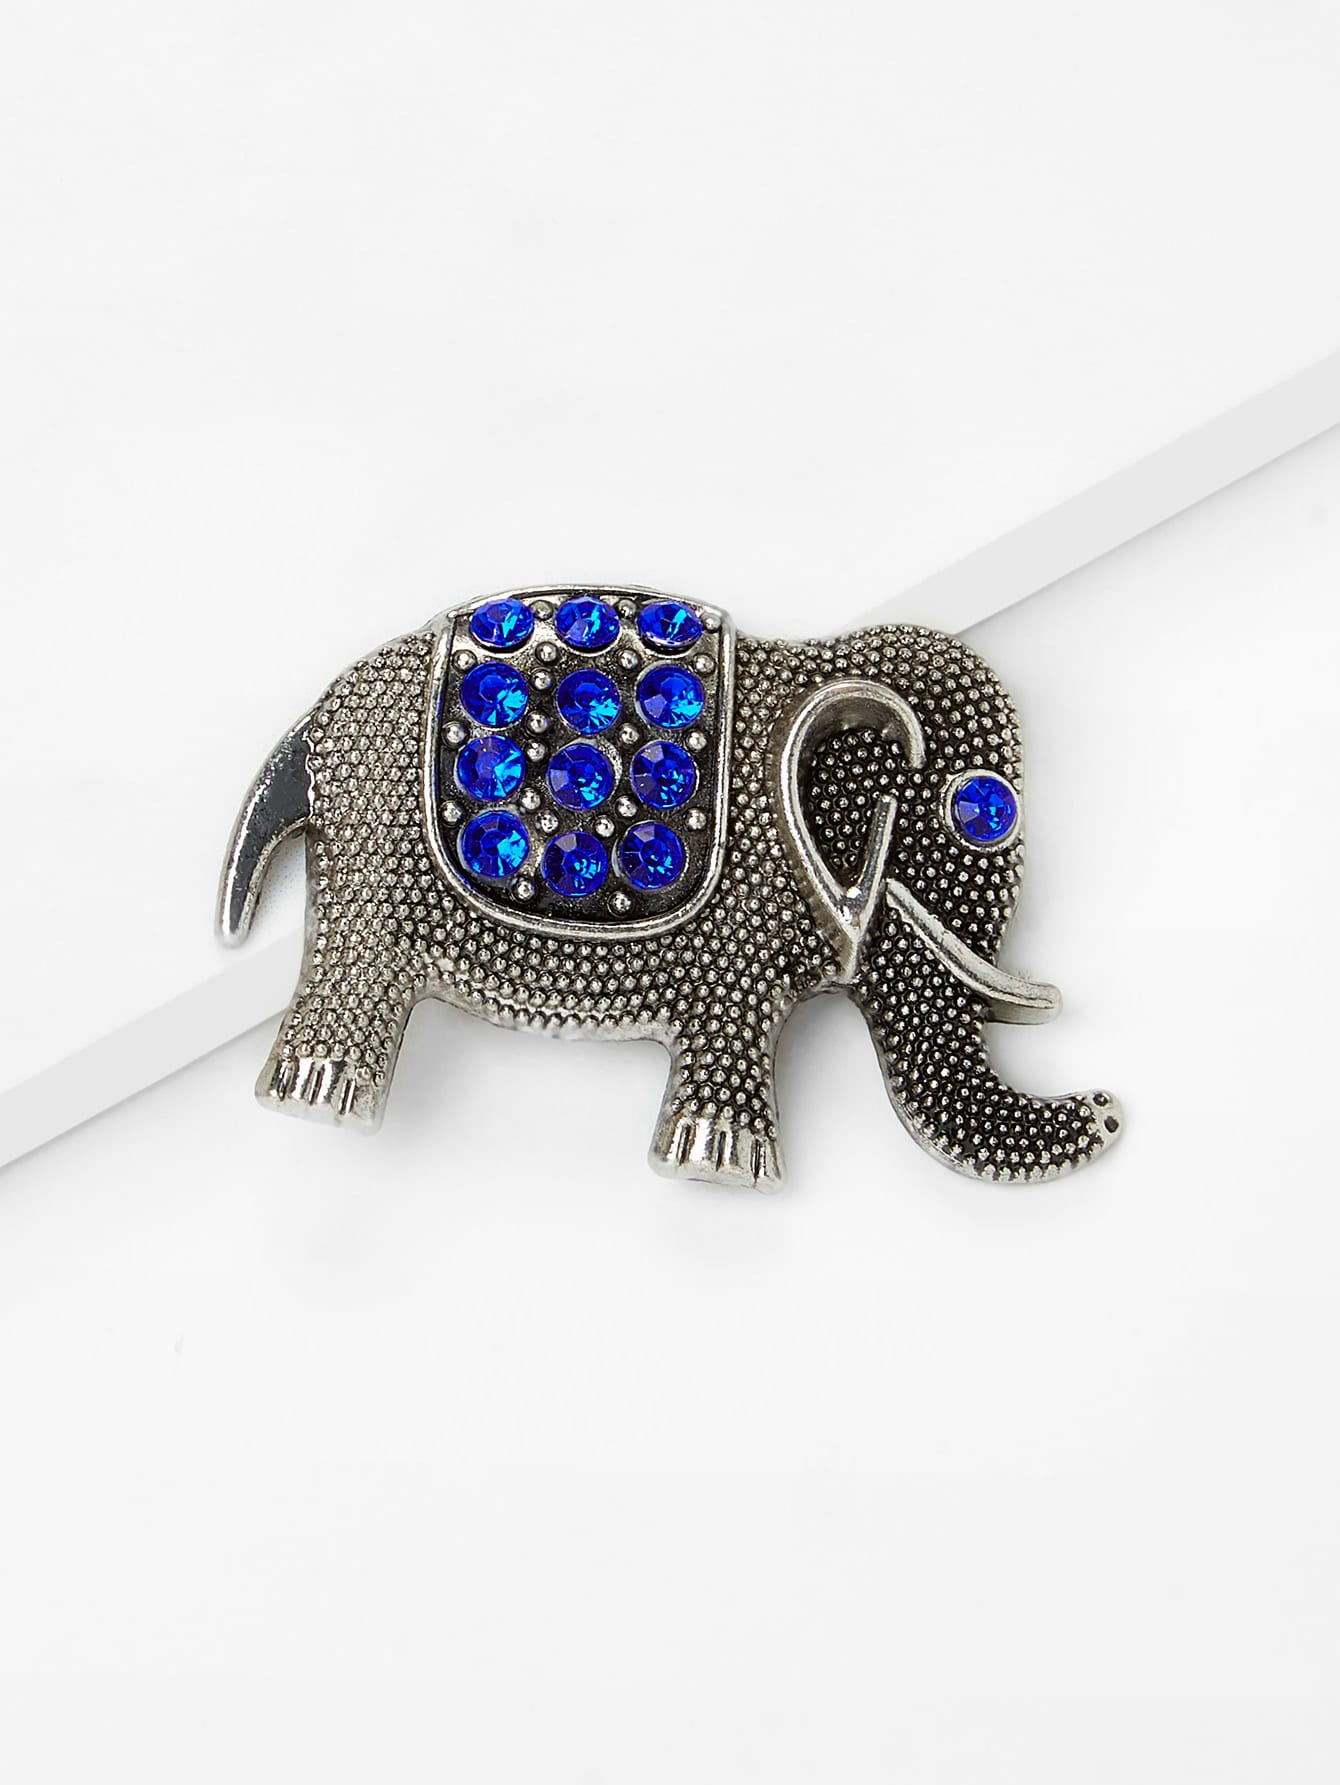 Elephant Design Fridge Magnet